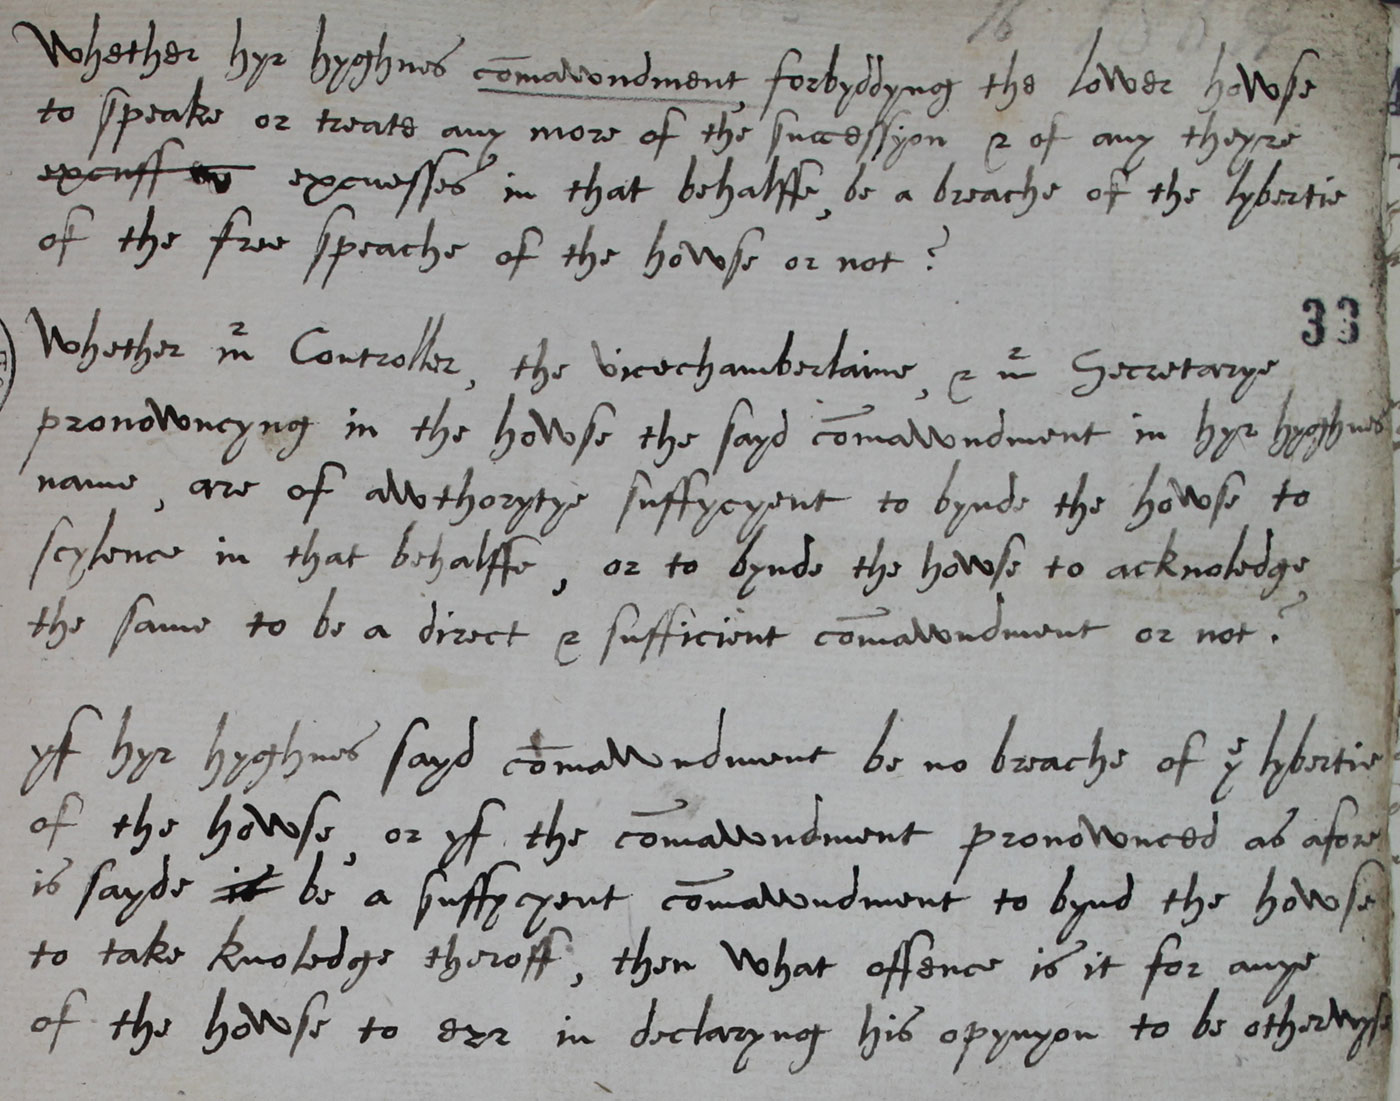 Peter Wentworth's questions on parliamentary privilege, 11 November 1566 (SP 12/41 f.33)